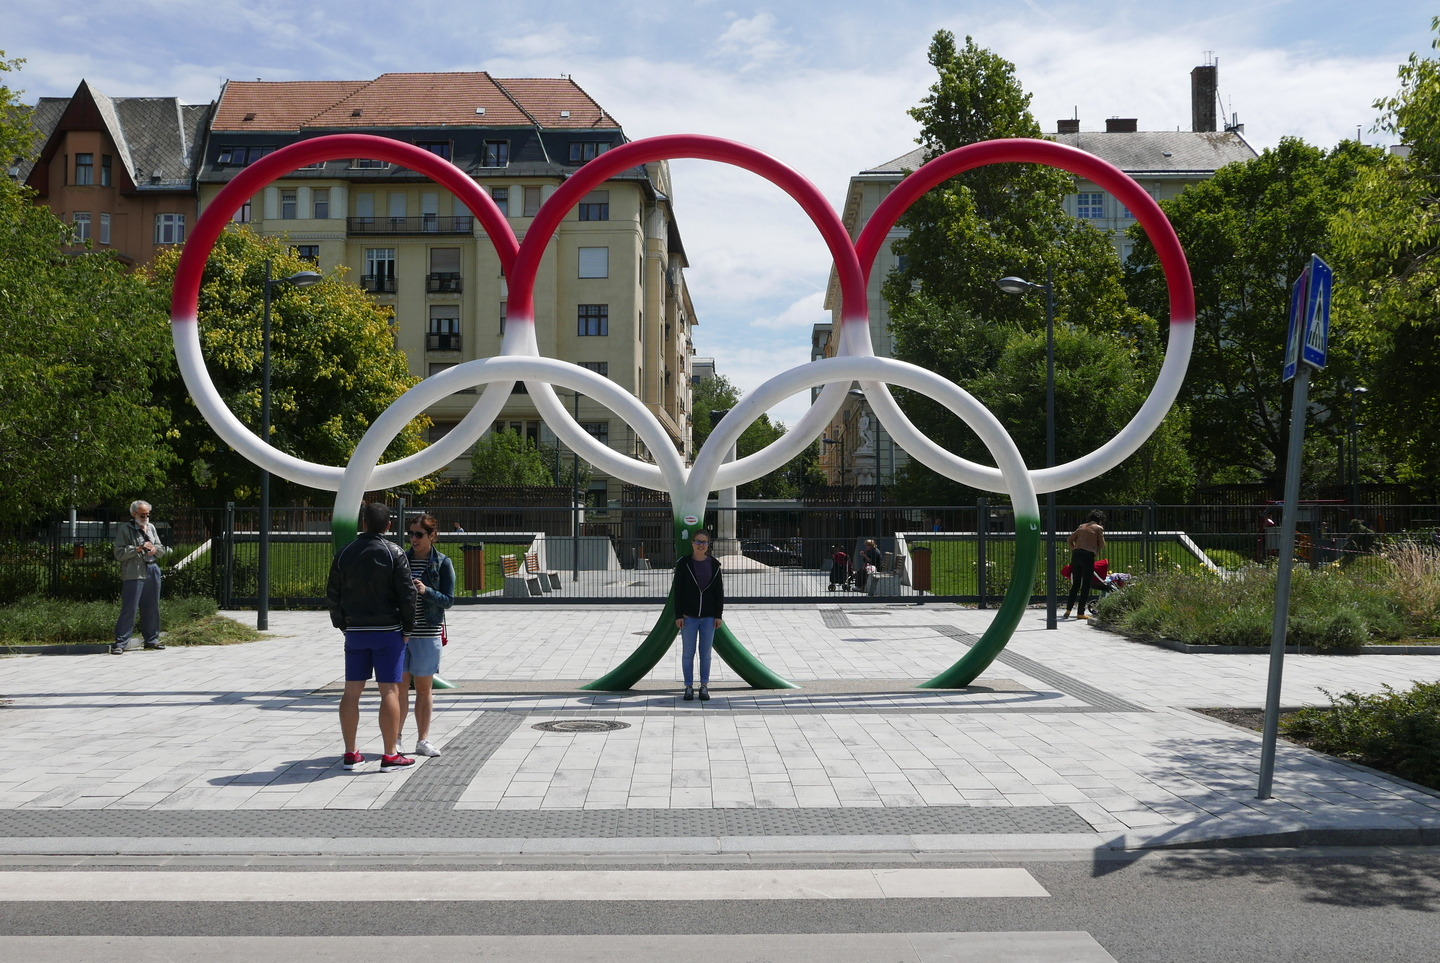 Olympic rings in hungarian colors